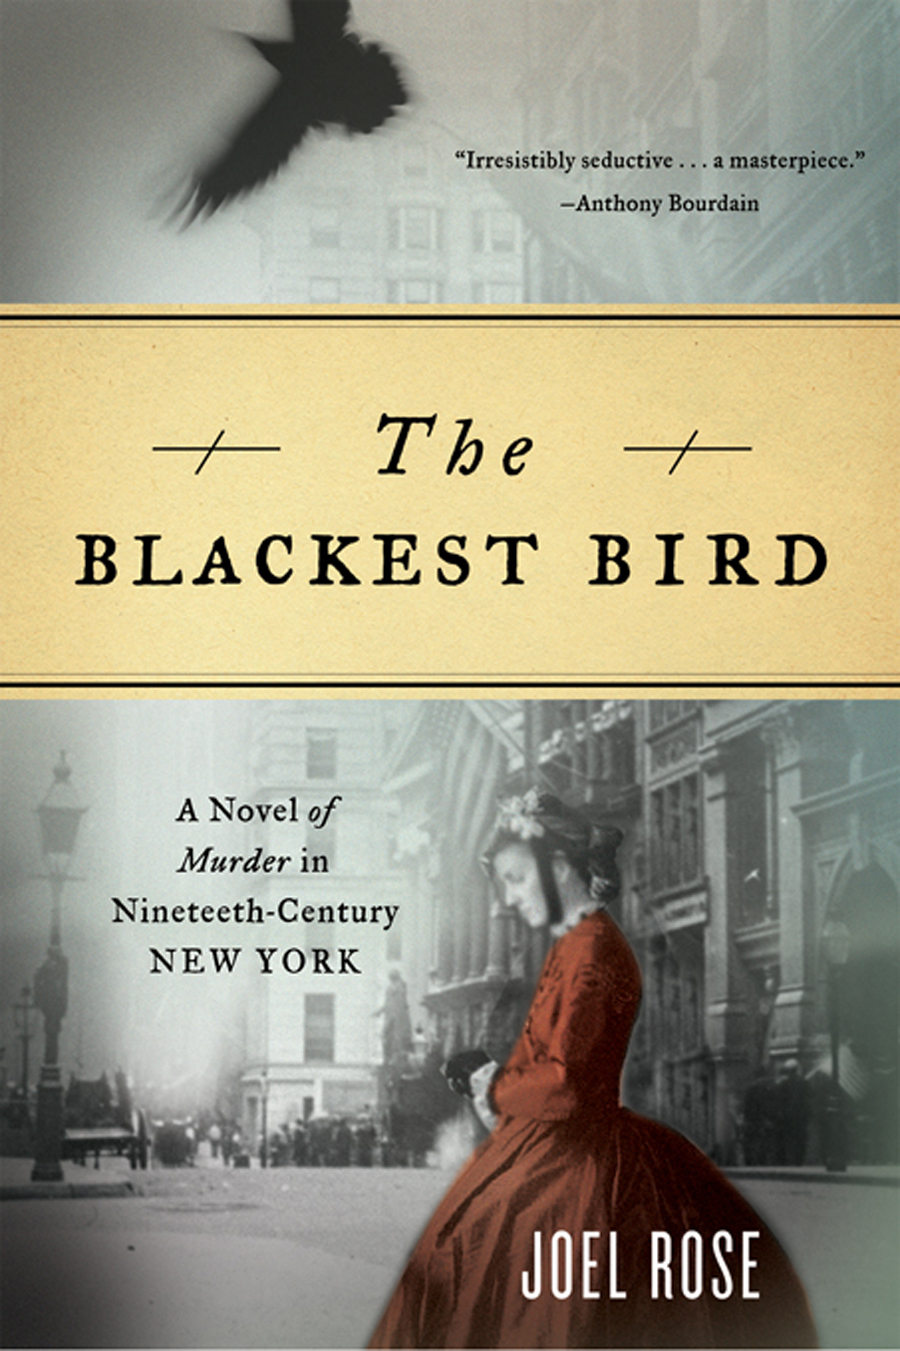 The Blackest Bird: A Novel of Murder in Nineteenth-Century New York